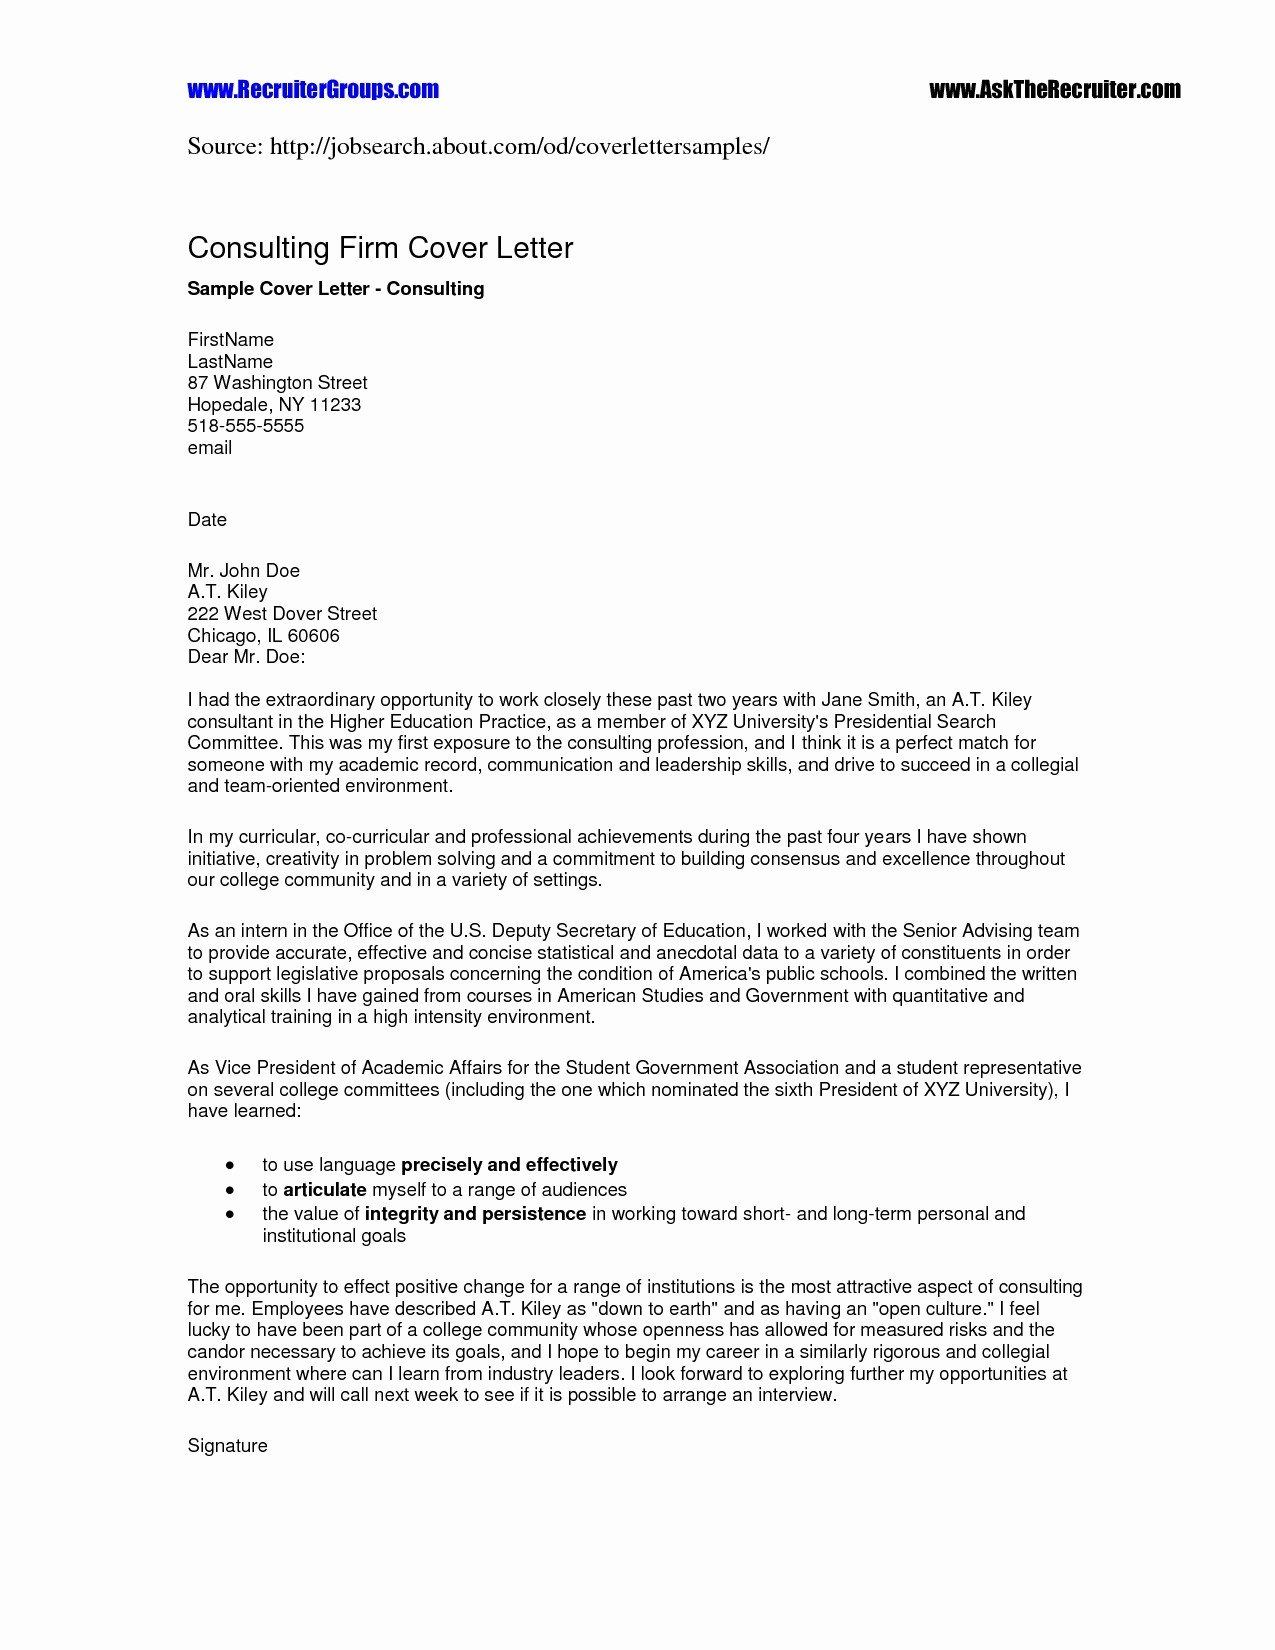 Reference Letter Template Free - Sample Cover Letter for Good Conduct Certificate Fresh Reference